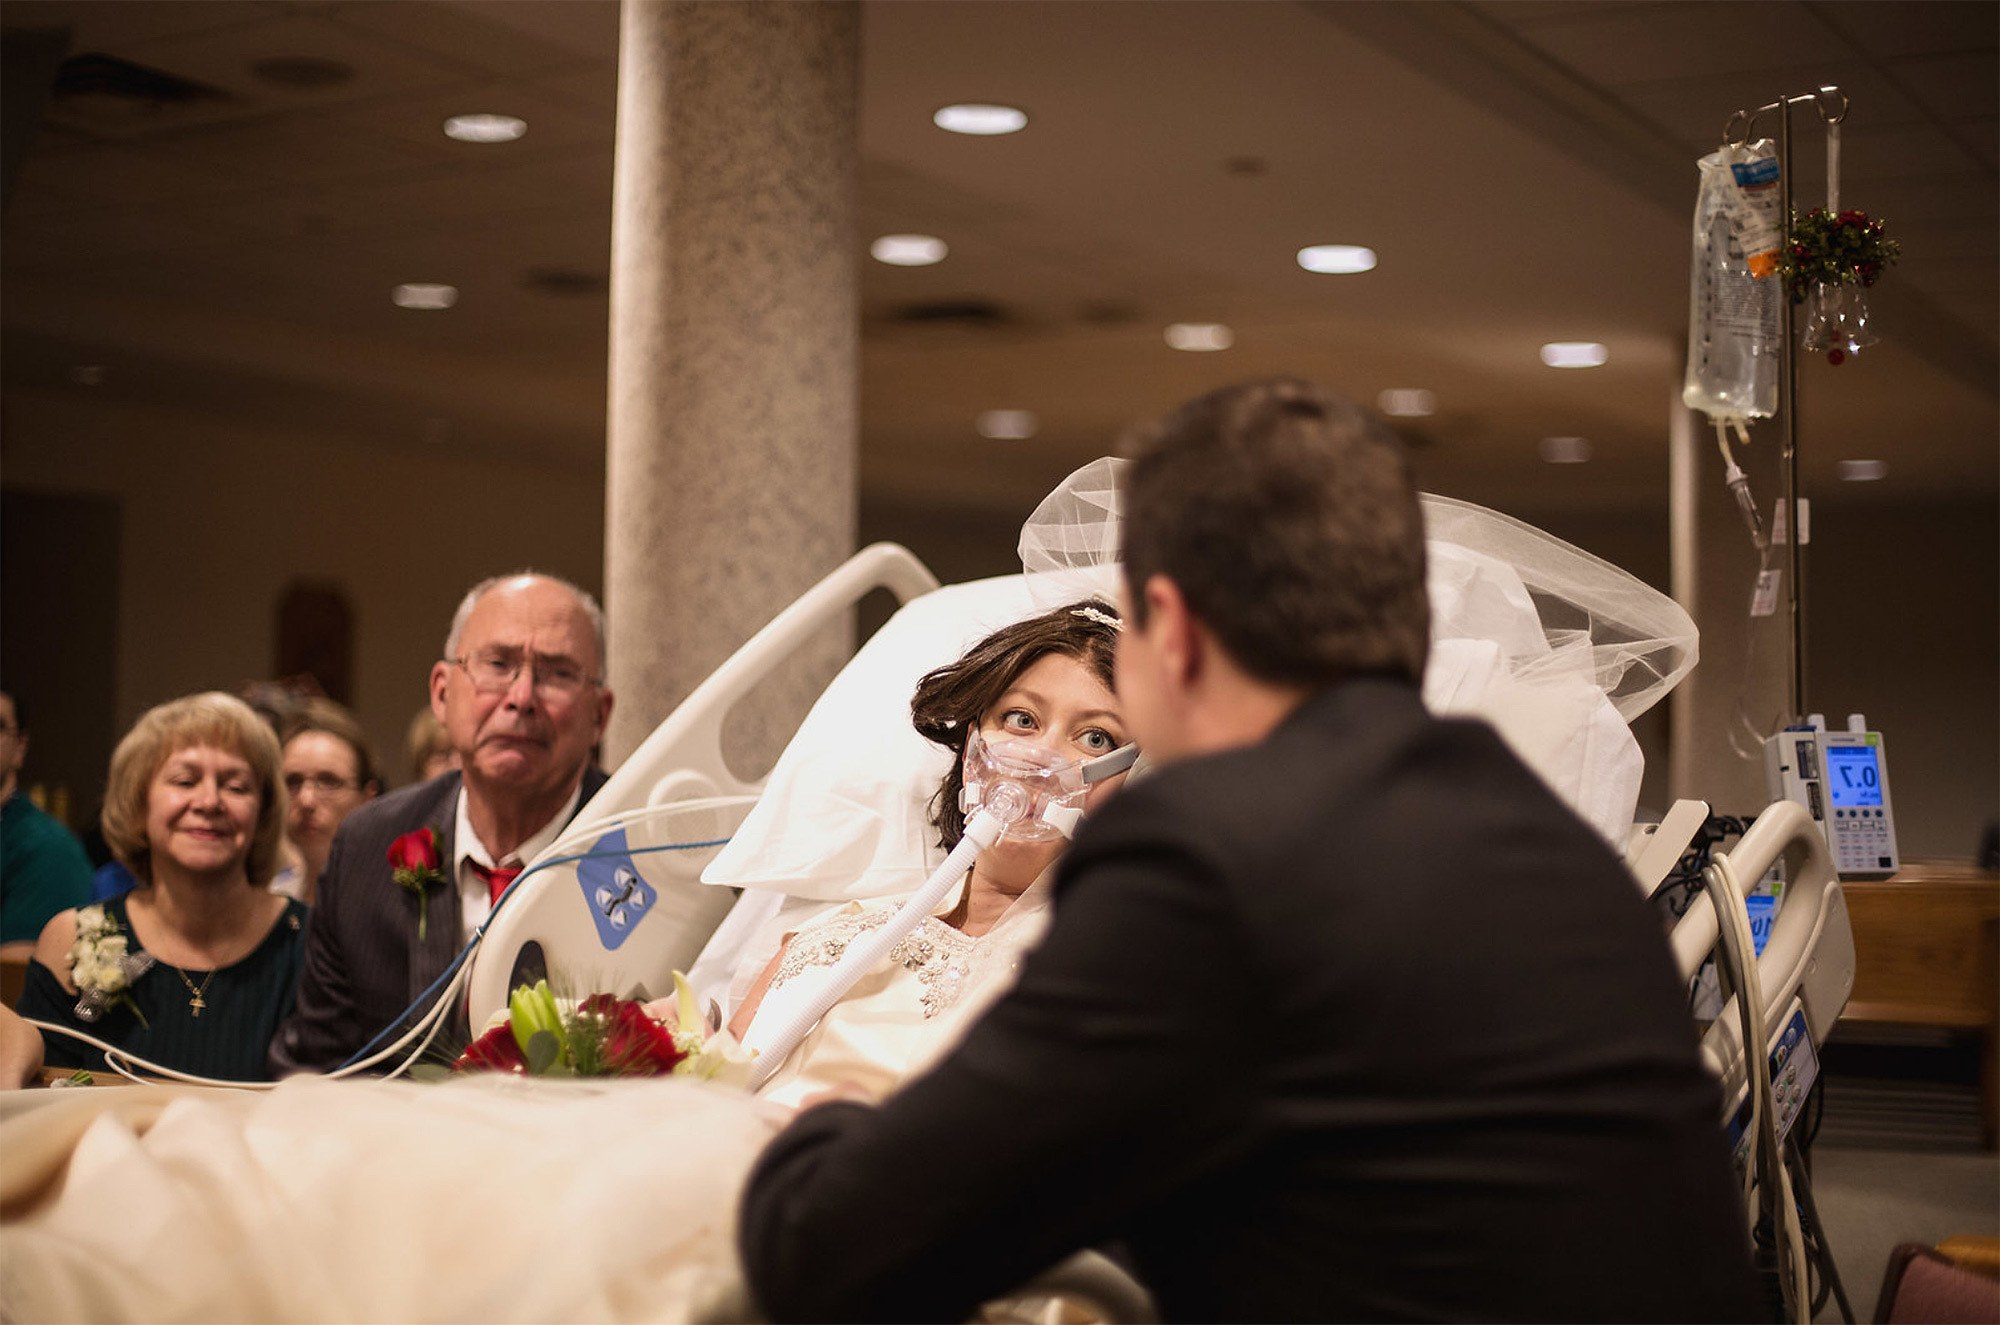 Inspirasi Bridesmaid Indonesia Hijab 87dx Husband Of Cancer Patient who Died Hours after Hospital